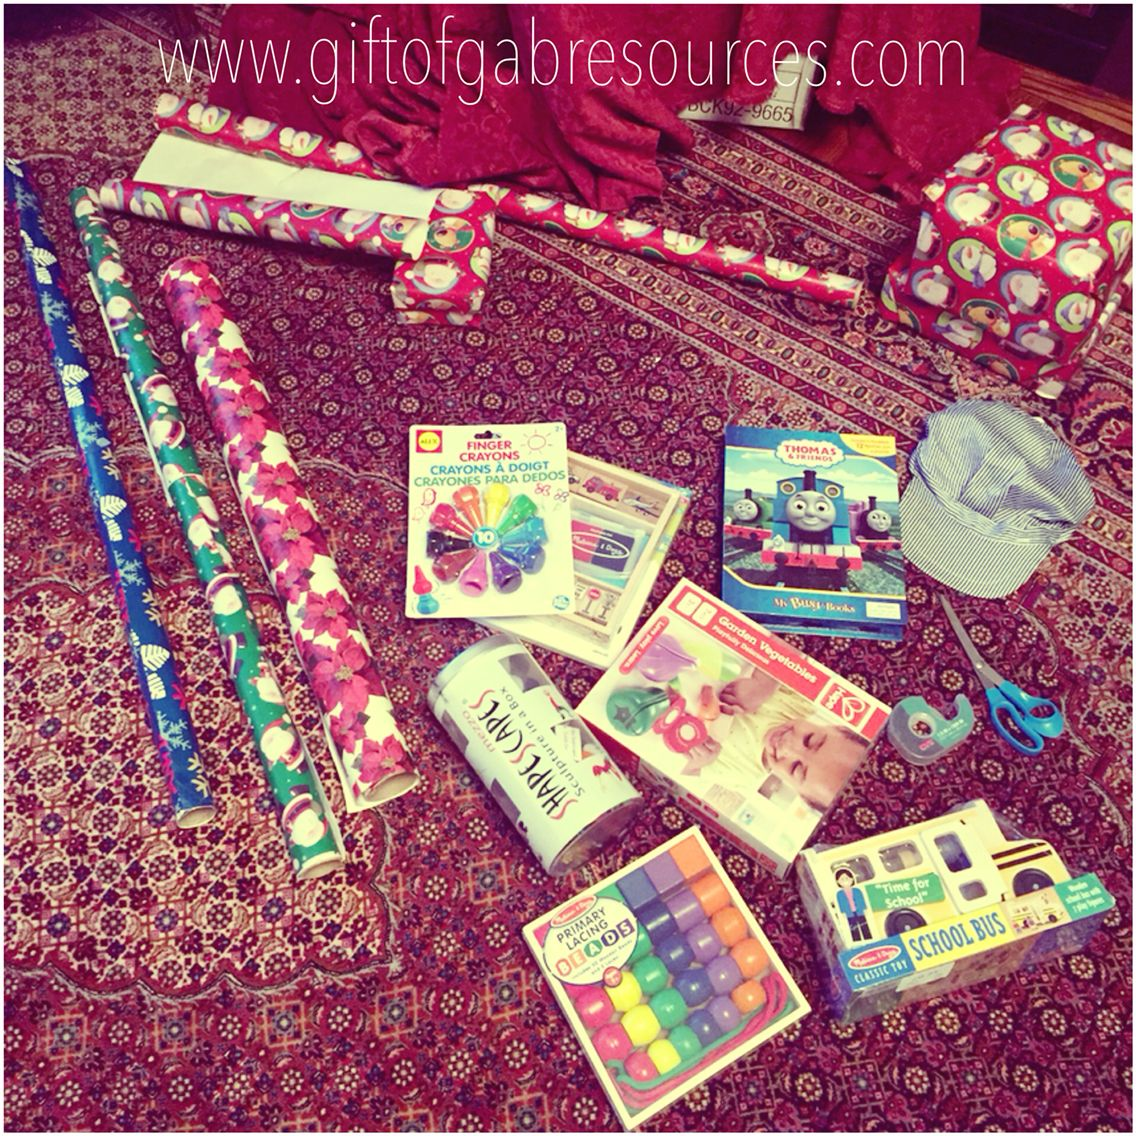 Wrapping up the last of #santa's #gifts!  We hope you checked out our #speechtherapist recommended #toys for 0-5 that we wrote for @bigcitymoms  http://www.bigcitymoms.com/pages/about/contributors/debbie-shiwbalak-and-alpin-rezvani.html;jsessionid=qp2796t6ii9kkgn2zvipz5nv #MerryXmas to all who celebrate!!